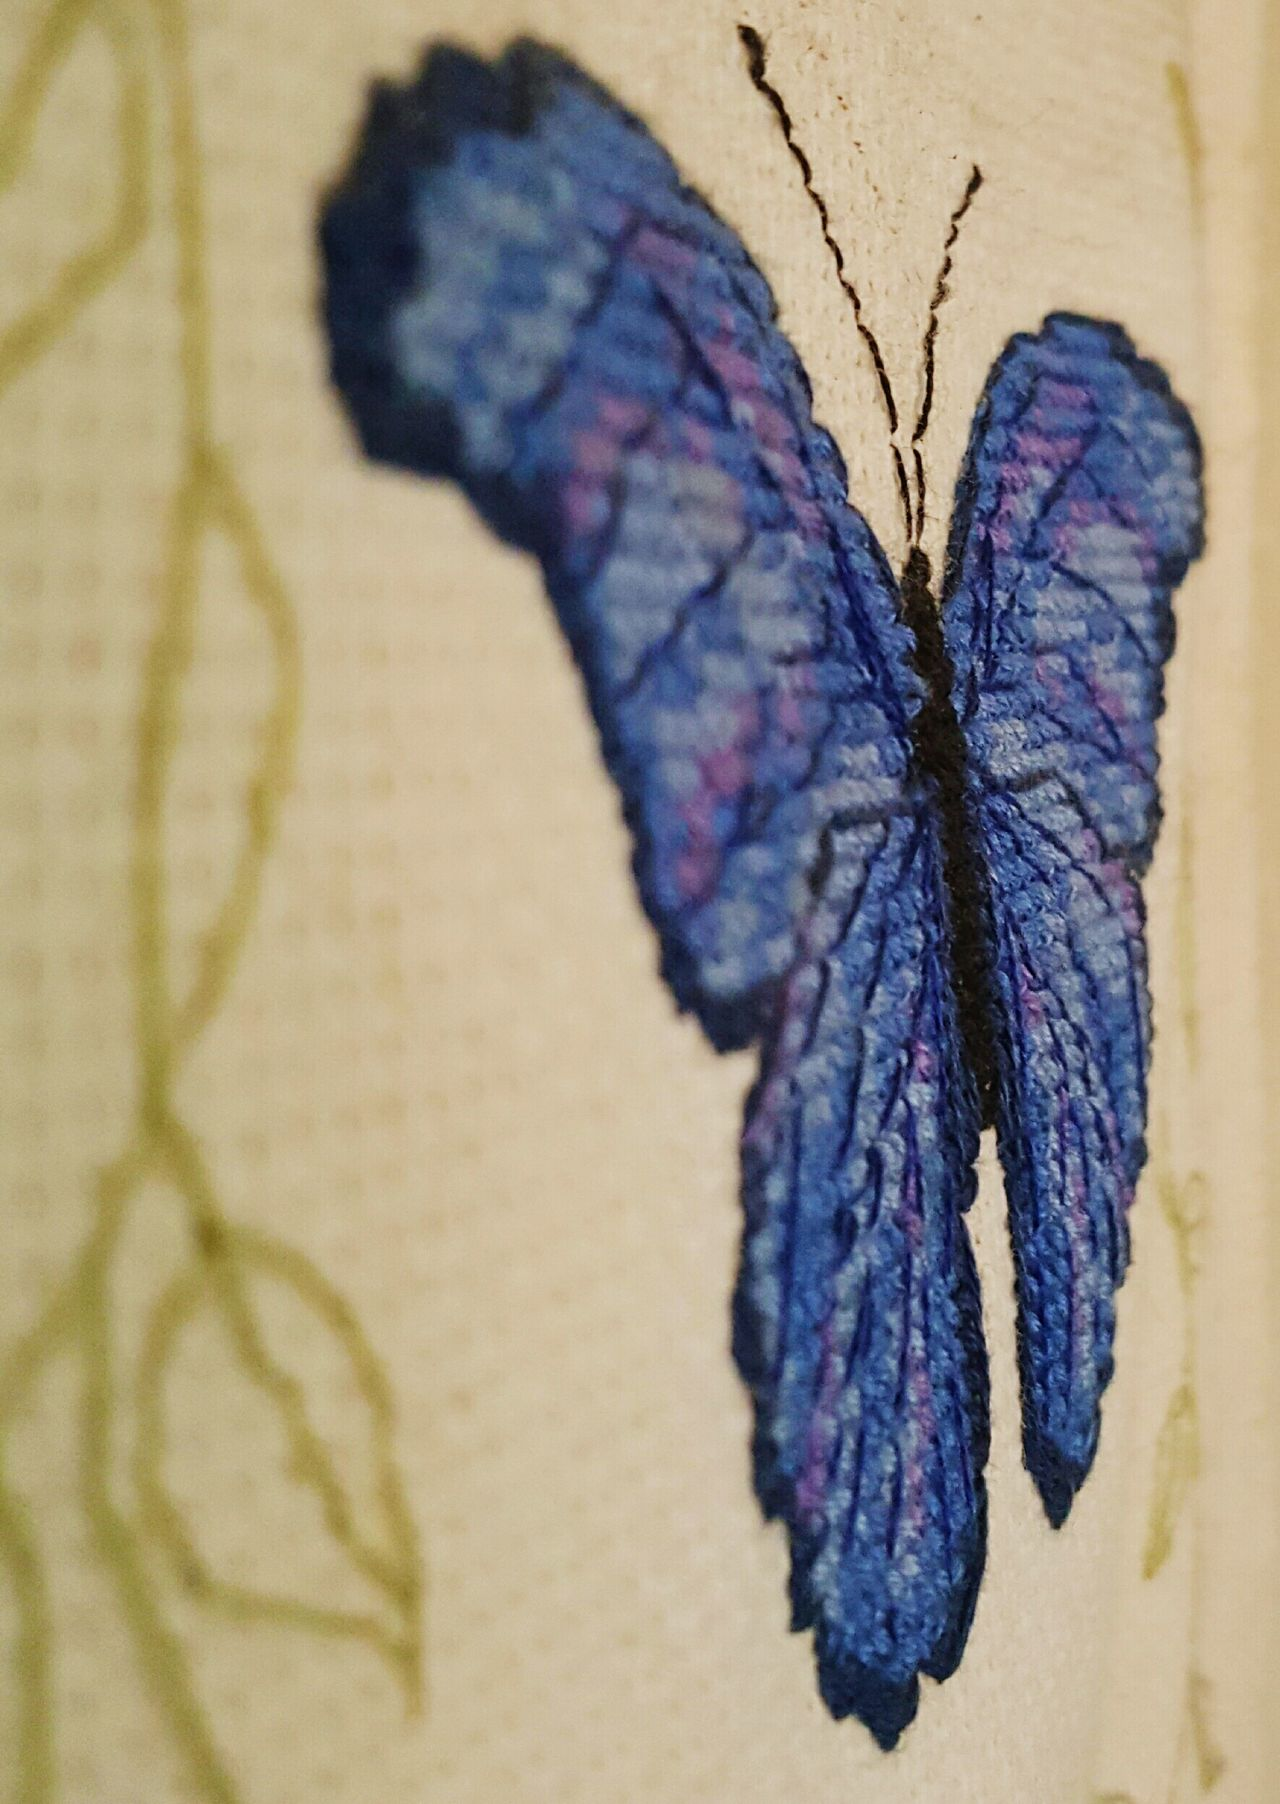 Blue hued butterfly cross-stich close-up view Butterfly - Insect Close-up Multi Colored No People Cross-stitch Macro Abstract Cross Stitch Macro_collection Textured  Textile Close Up